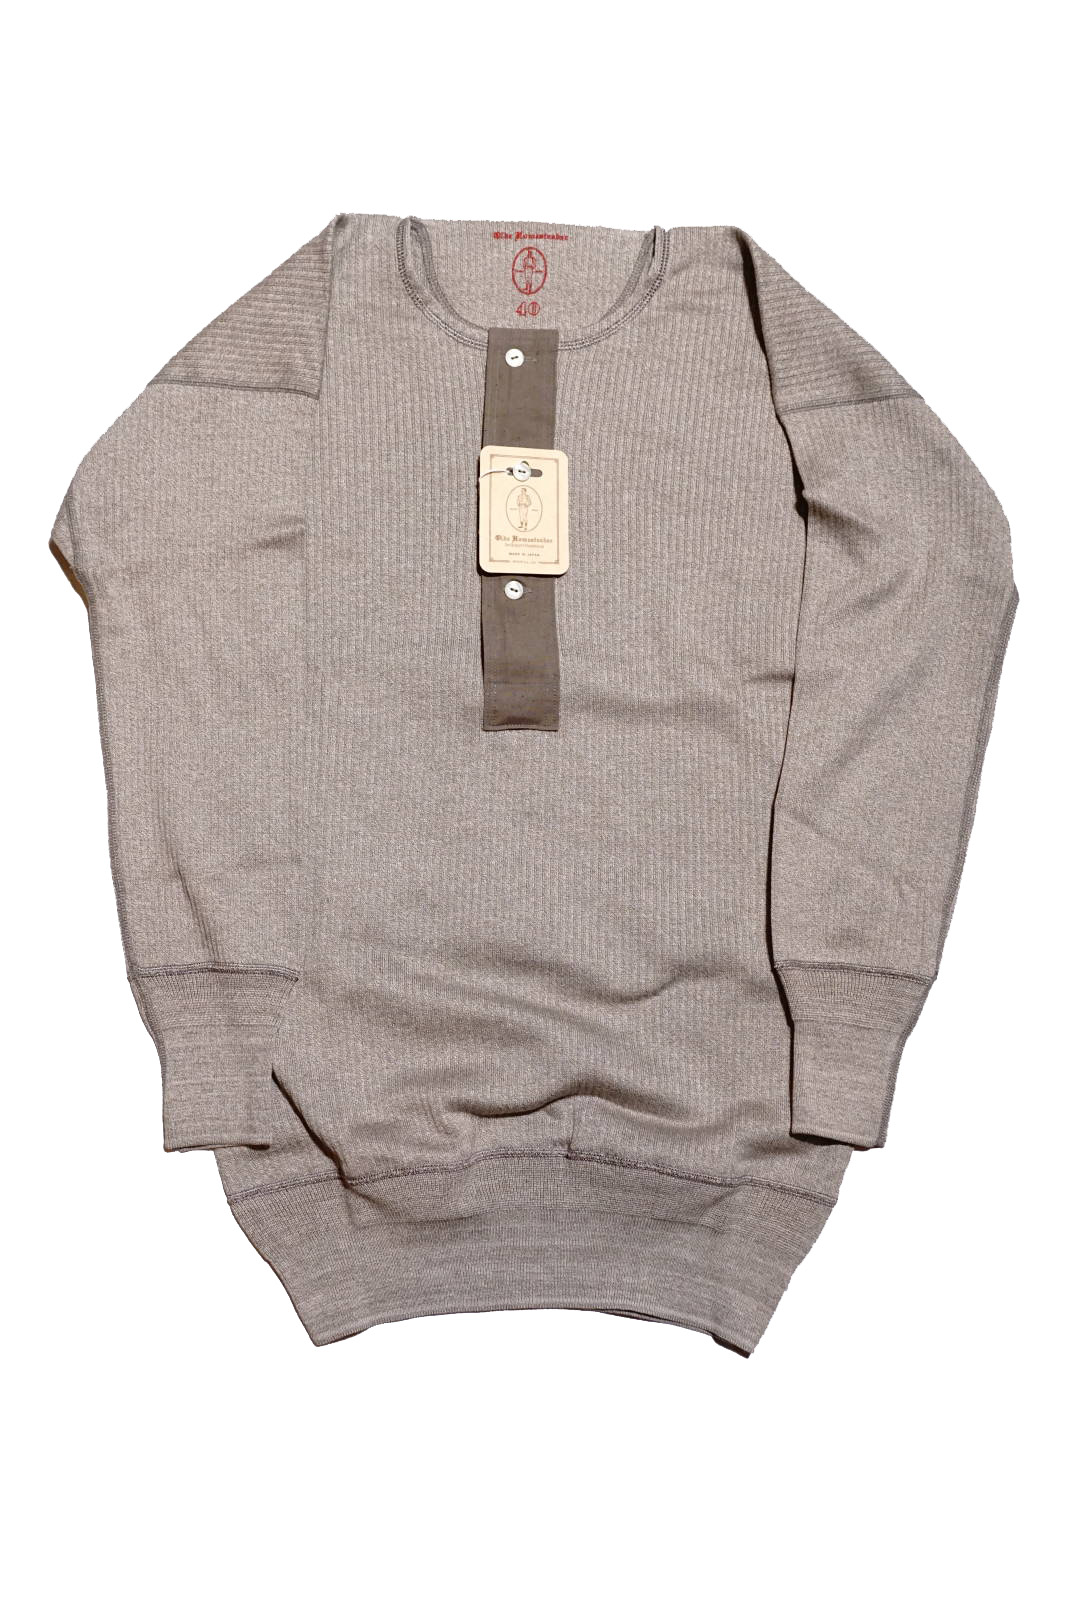 "Olde Homesteader ""Henley Neck Longsleeve"" – Swedenish Army Rib – Mottled Grey"